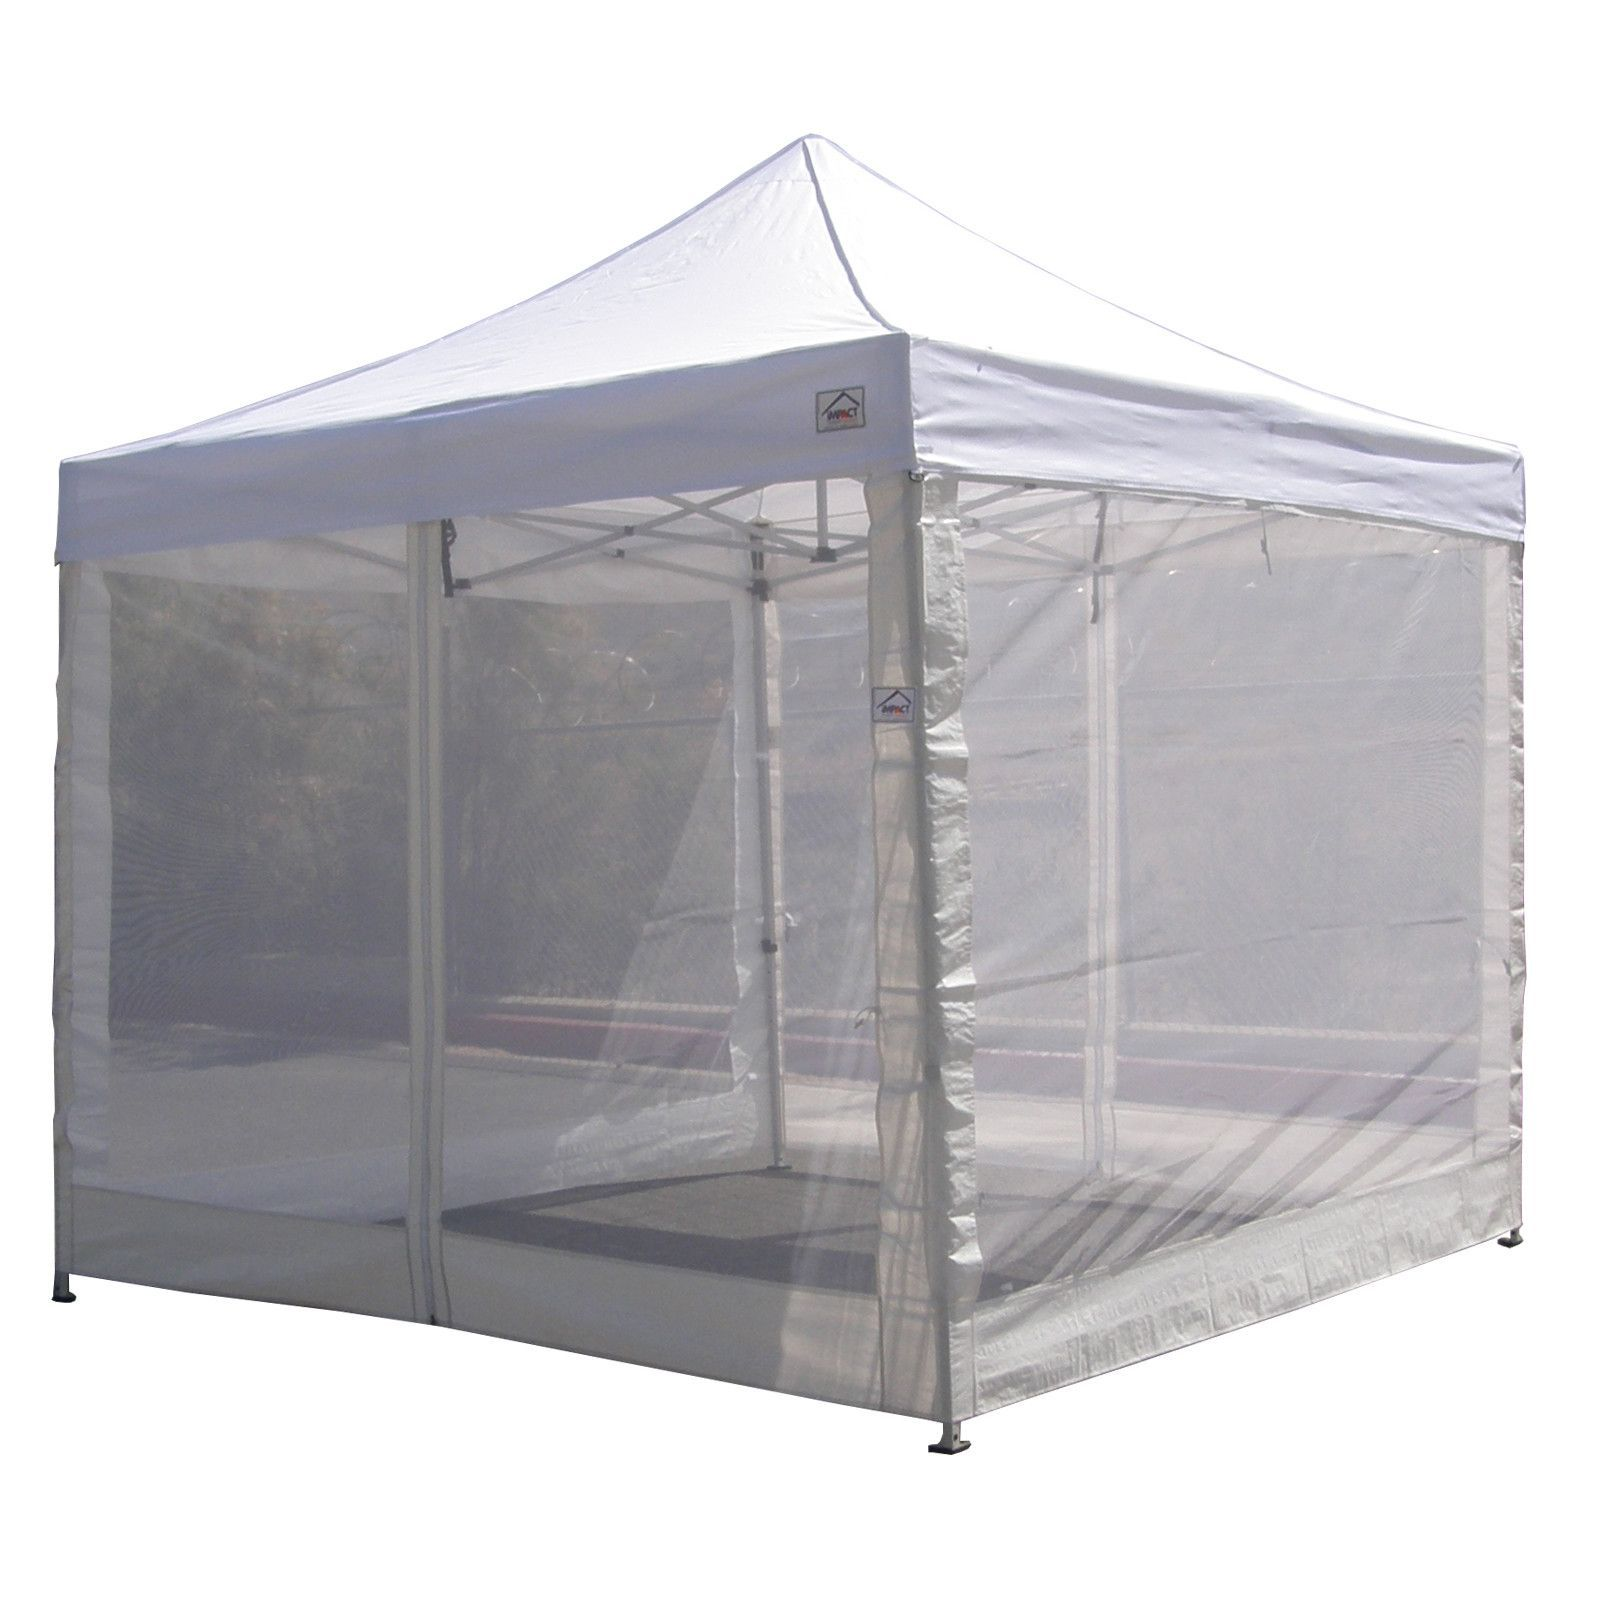 10u0027x10u0027 Pop Up Canopy Tent Mesh Sidewalls Screen Room Mosquito Net Sidewalls  sc 1 st  Pinterest : 10x10 canopy with netting - memphite.com